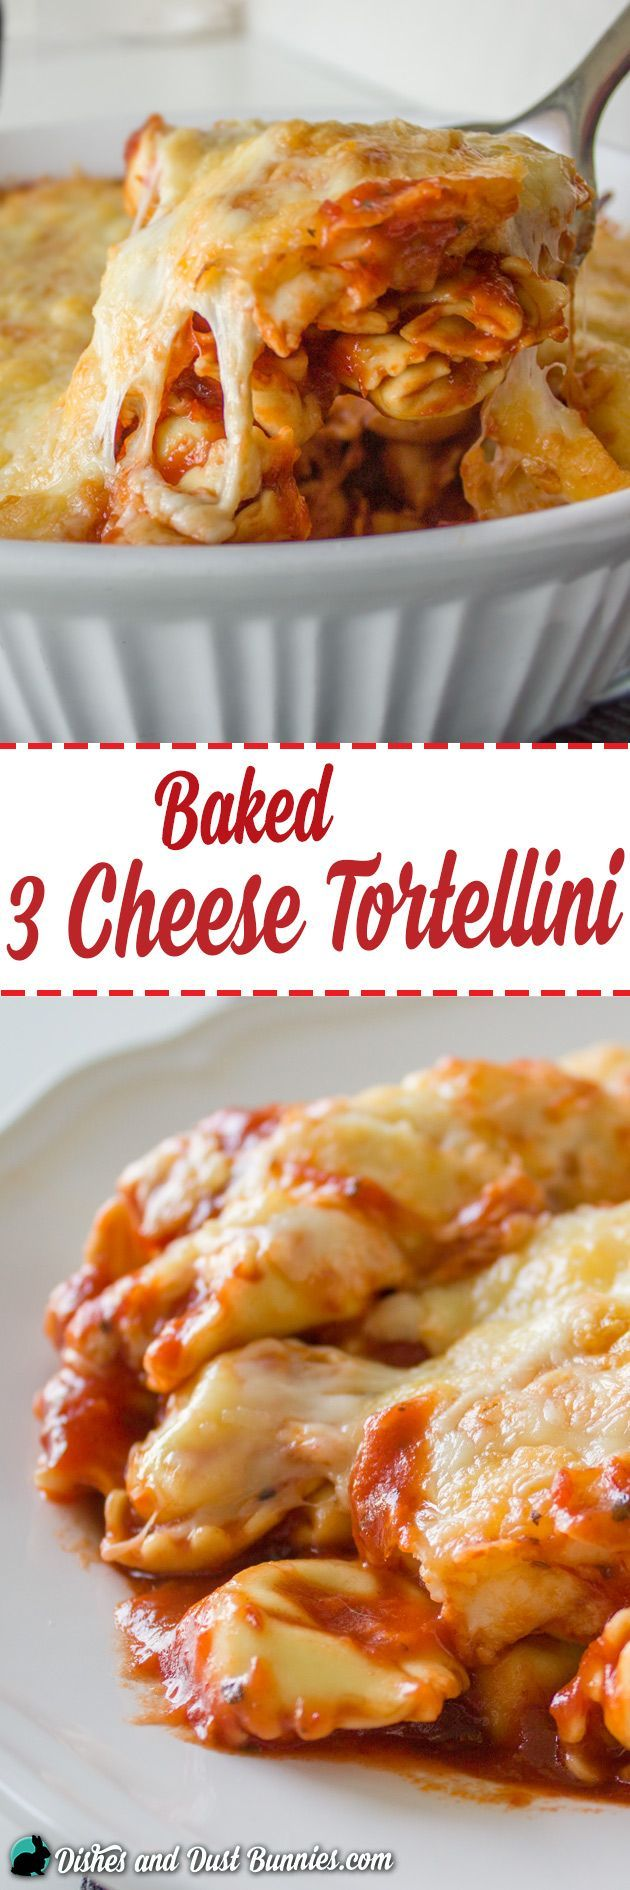 Baked 3 Cheese Tortellini - So Easy and Perfect for Busy Days! from dishesanddustbunnies.com